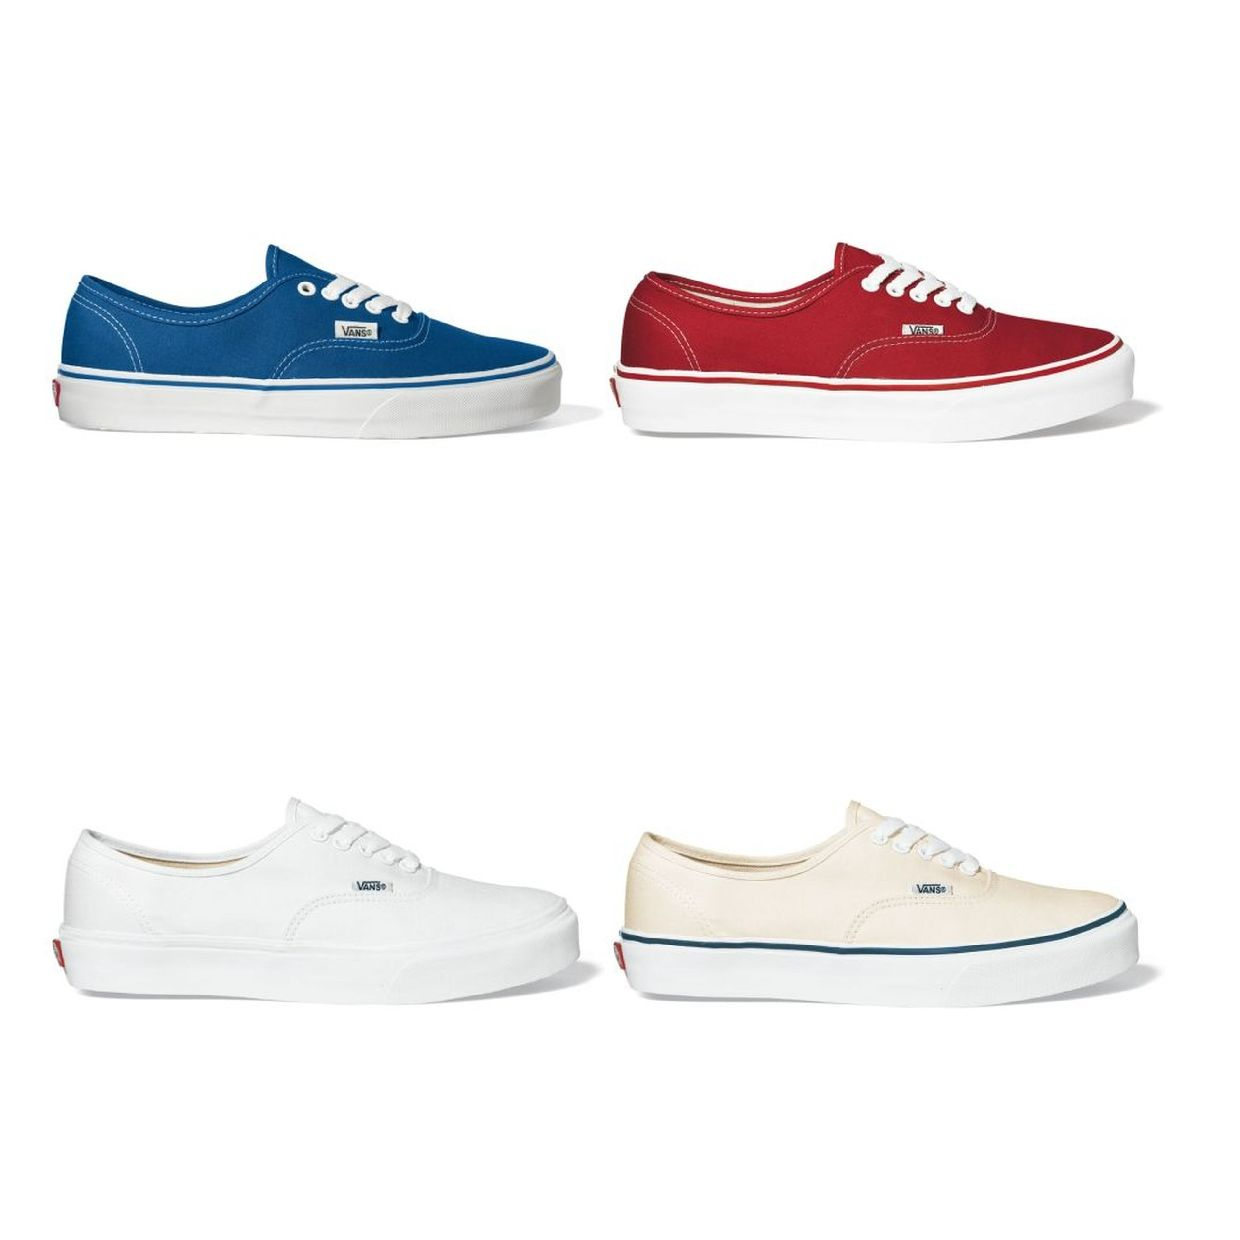 Vans Authentic Sneaker Halbschuhe Canvas Unisex Schuhe CO